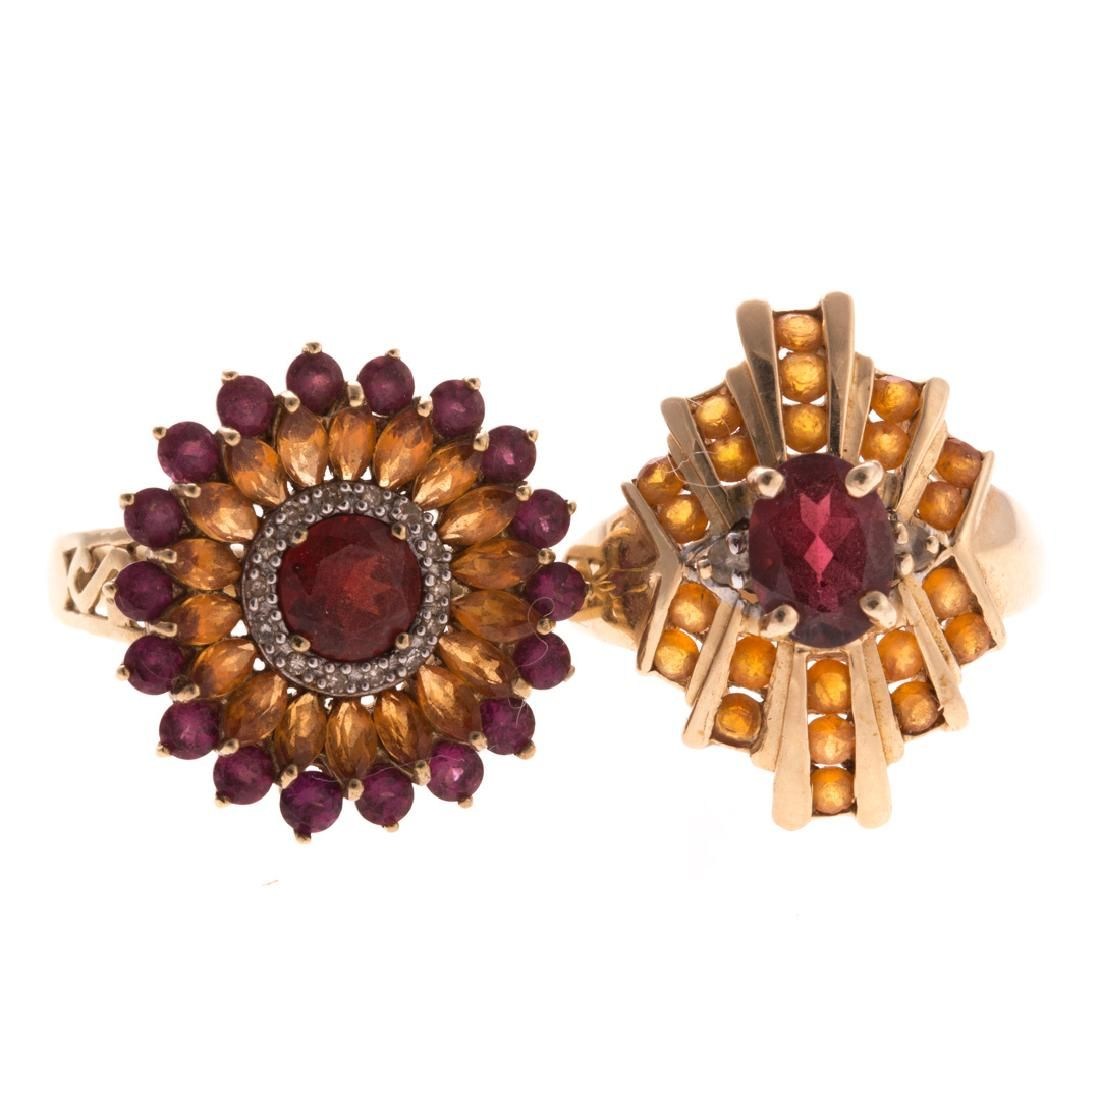 Two Lady's Gemstone Rings in 14K and 10K